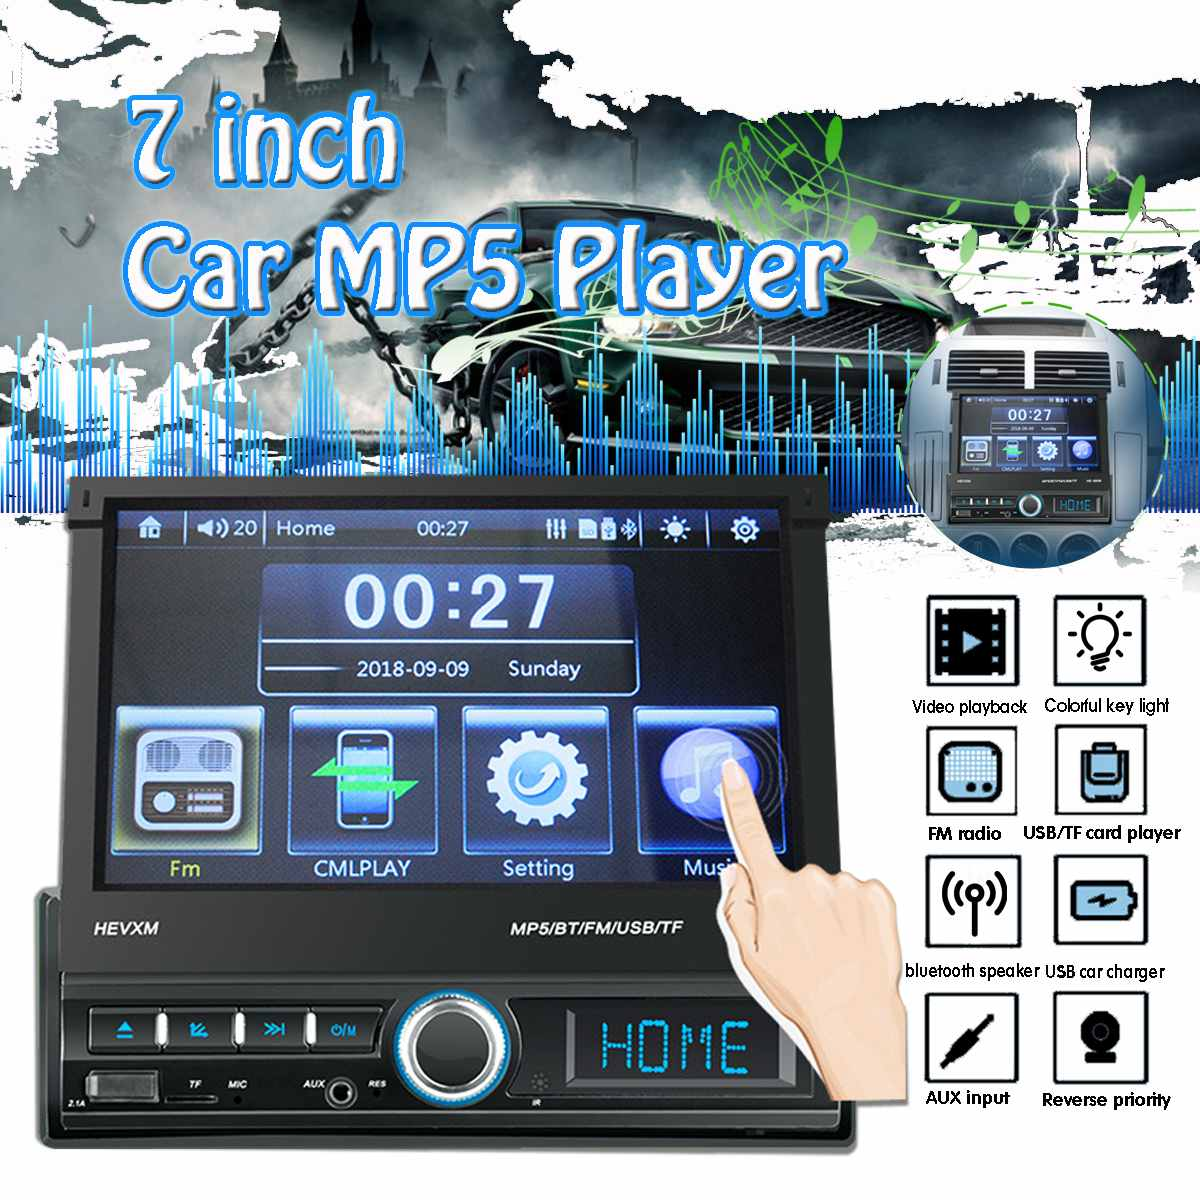 MP5 Player bluetooth FM 7Inch 1 DIN  Car Stereo Radio Screen In Dash Hands-Free Calls Remote Control USB AUX TFMP5 Player bluetooth FM 7Inch 1 DIN  Car Stereo Radio Screen In Dash Hands-Free Calls Remote Control USB AUX TF